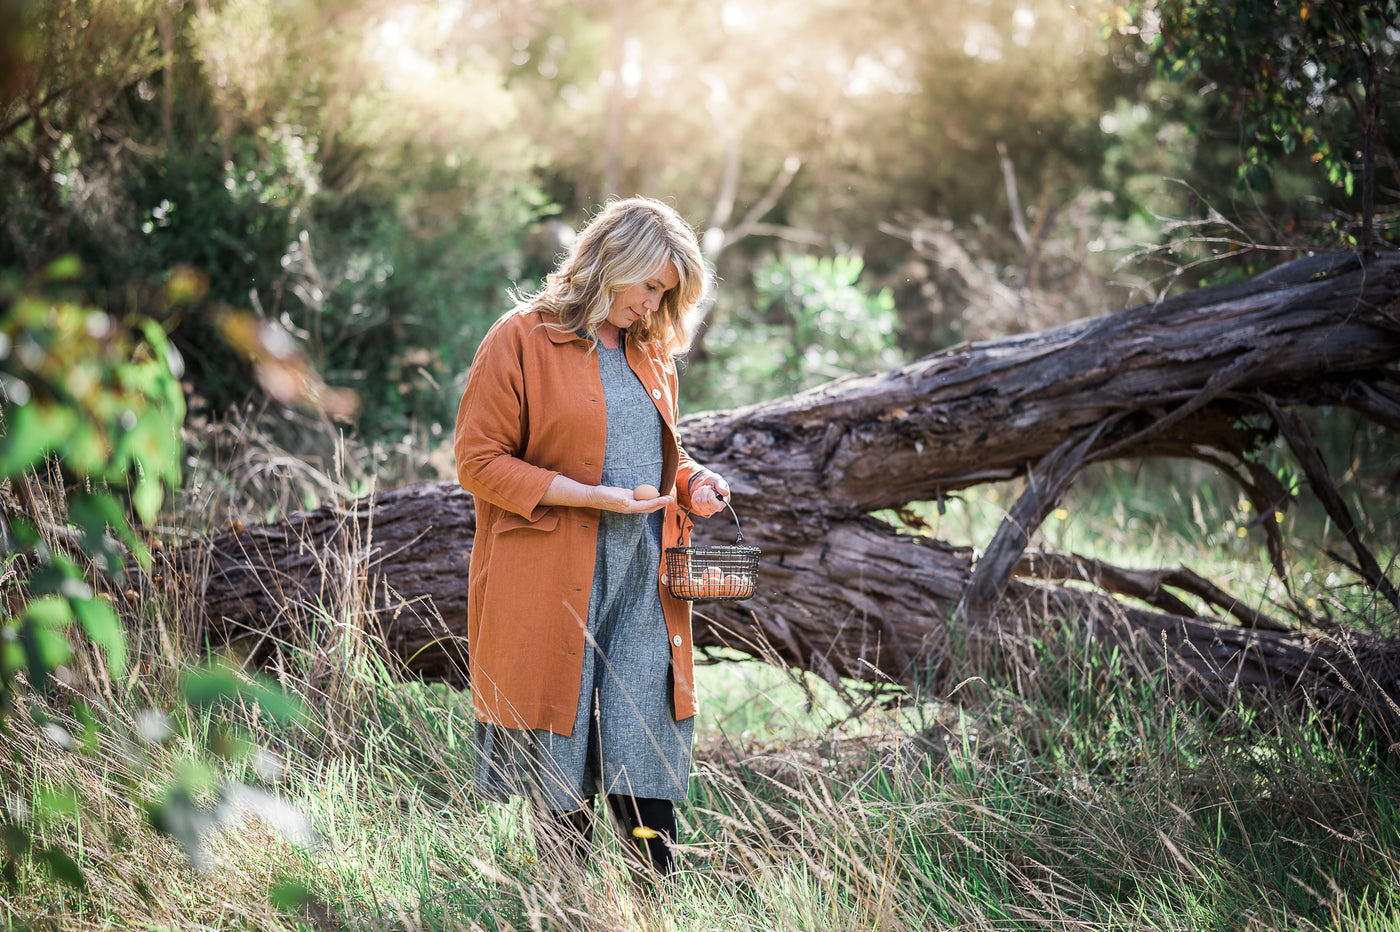 Amy from Ruby Hill organics is standing in a paddock.  She is holding an egg basket in one hand and an egg in the other.  Amy is wearing a line black marle dress from MATTA Clothing.  Over the dress she is wearing an Ochre coloured linen Jacket.